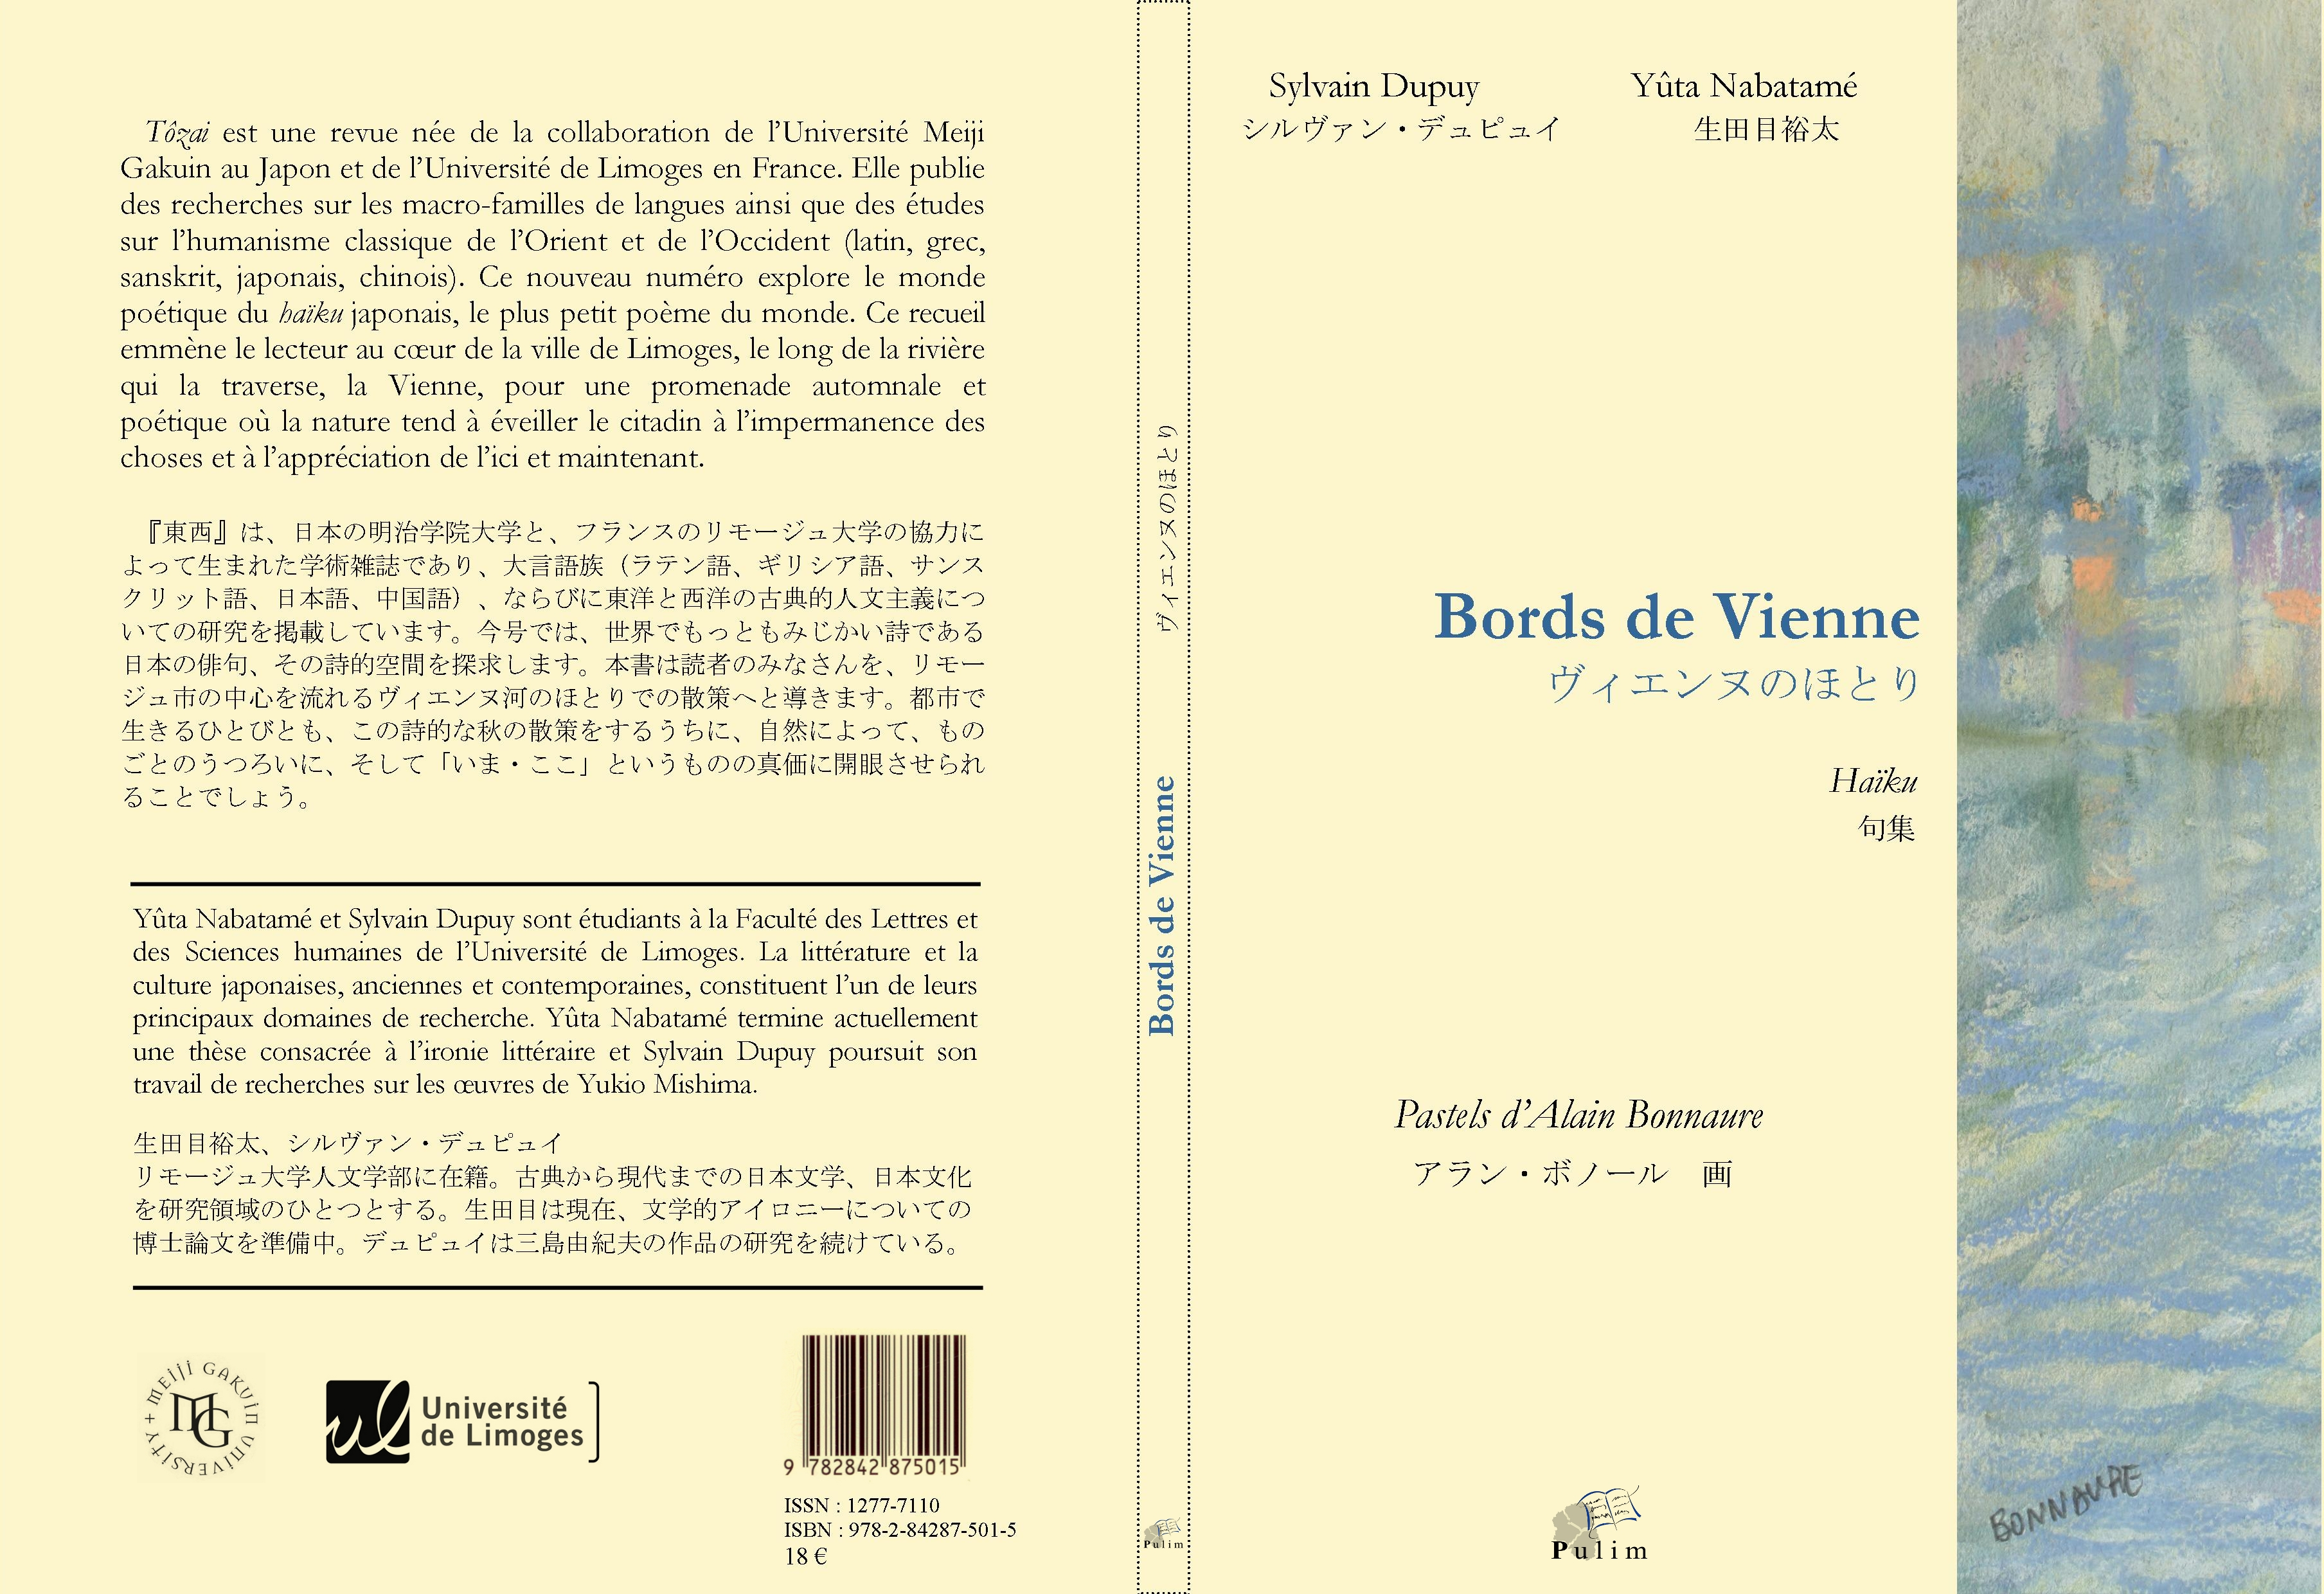 Bords_de_Vienne_couverture.jpg - 2.16 MB